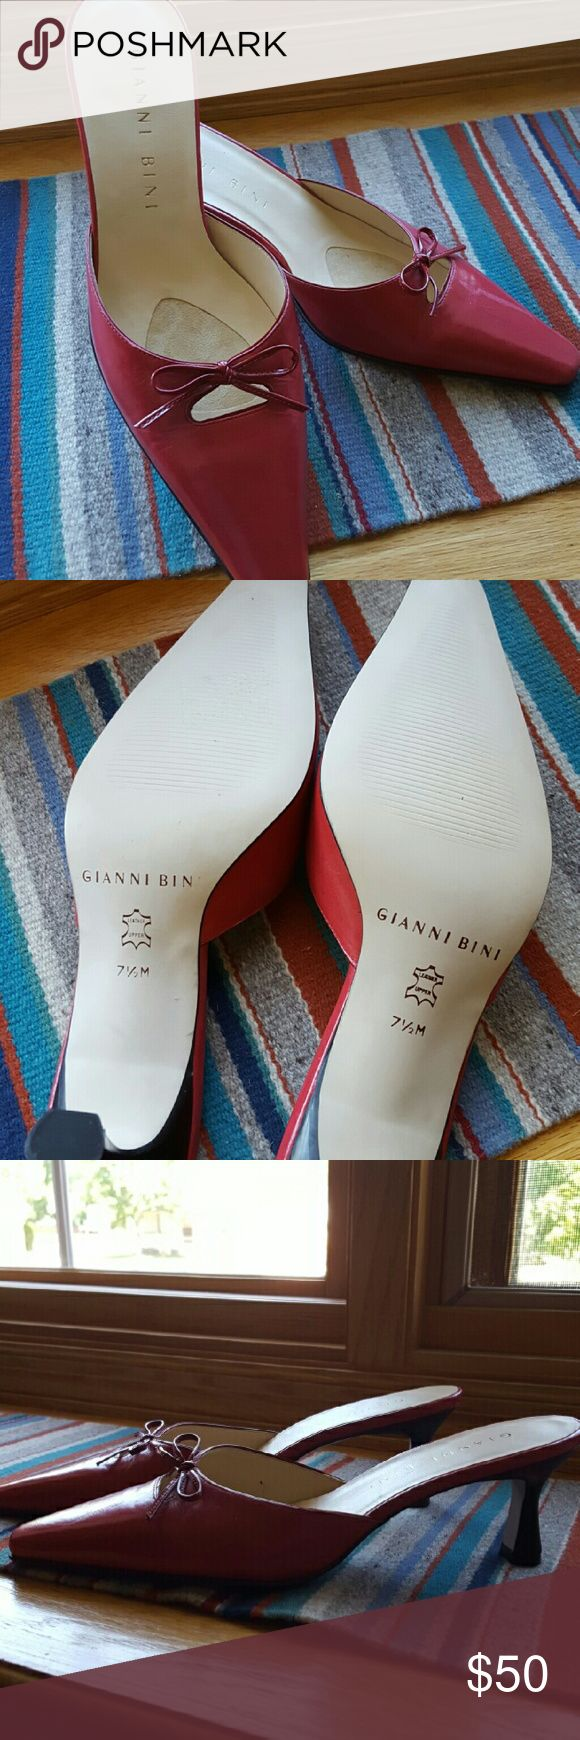 Gianni Bini Italian shoes, slides Gorgeous pair or Italian shoes. Onky worn once. No wear at all. Very chic pair of classy shoes Gianni Bini Shoes Mules & Clogs